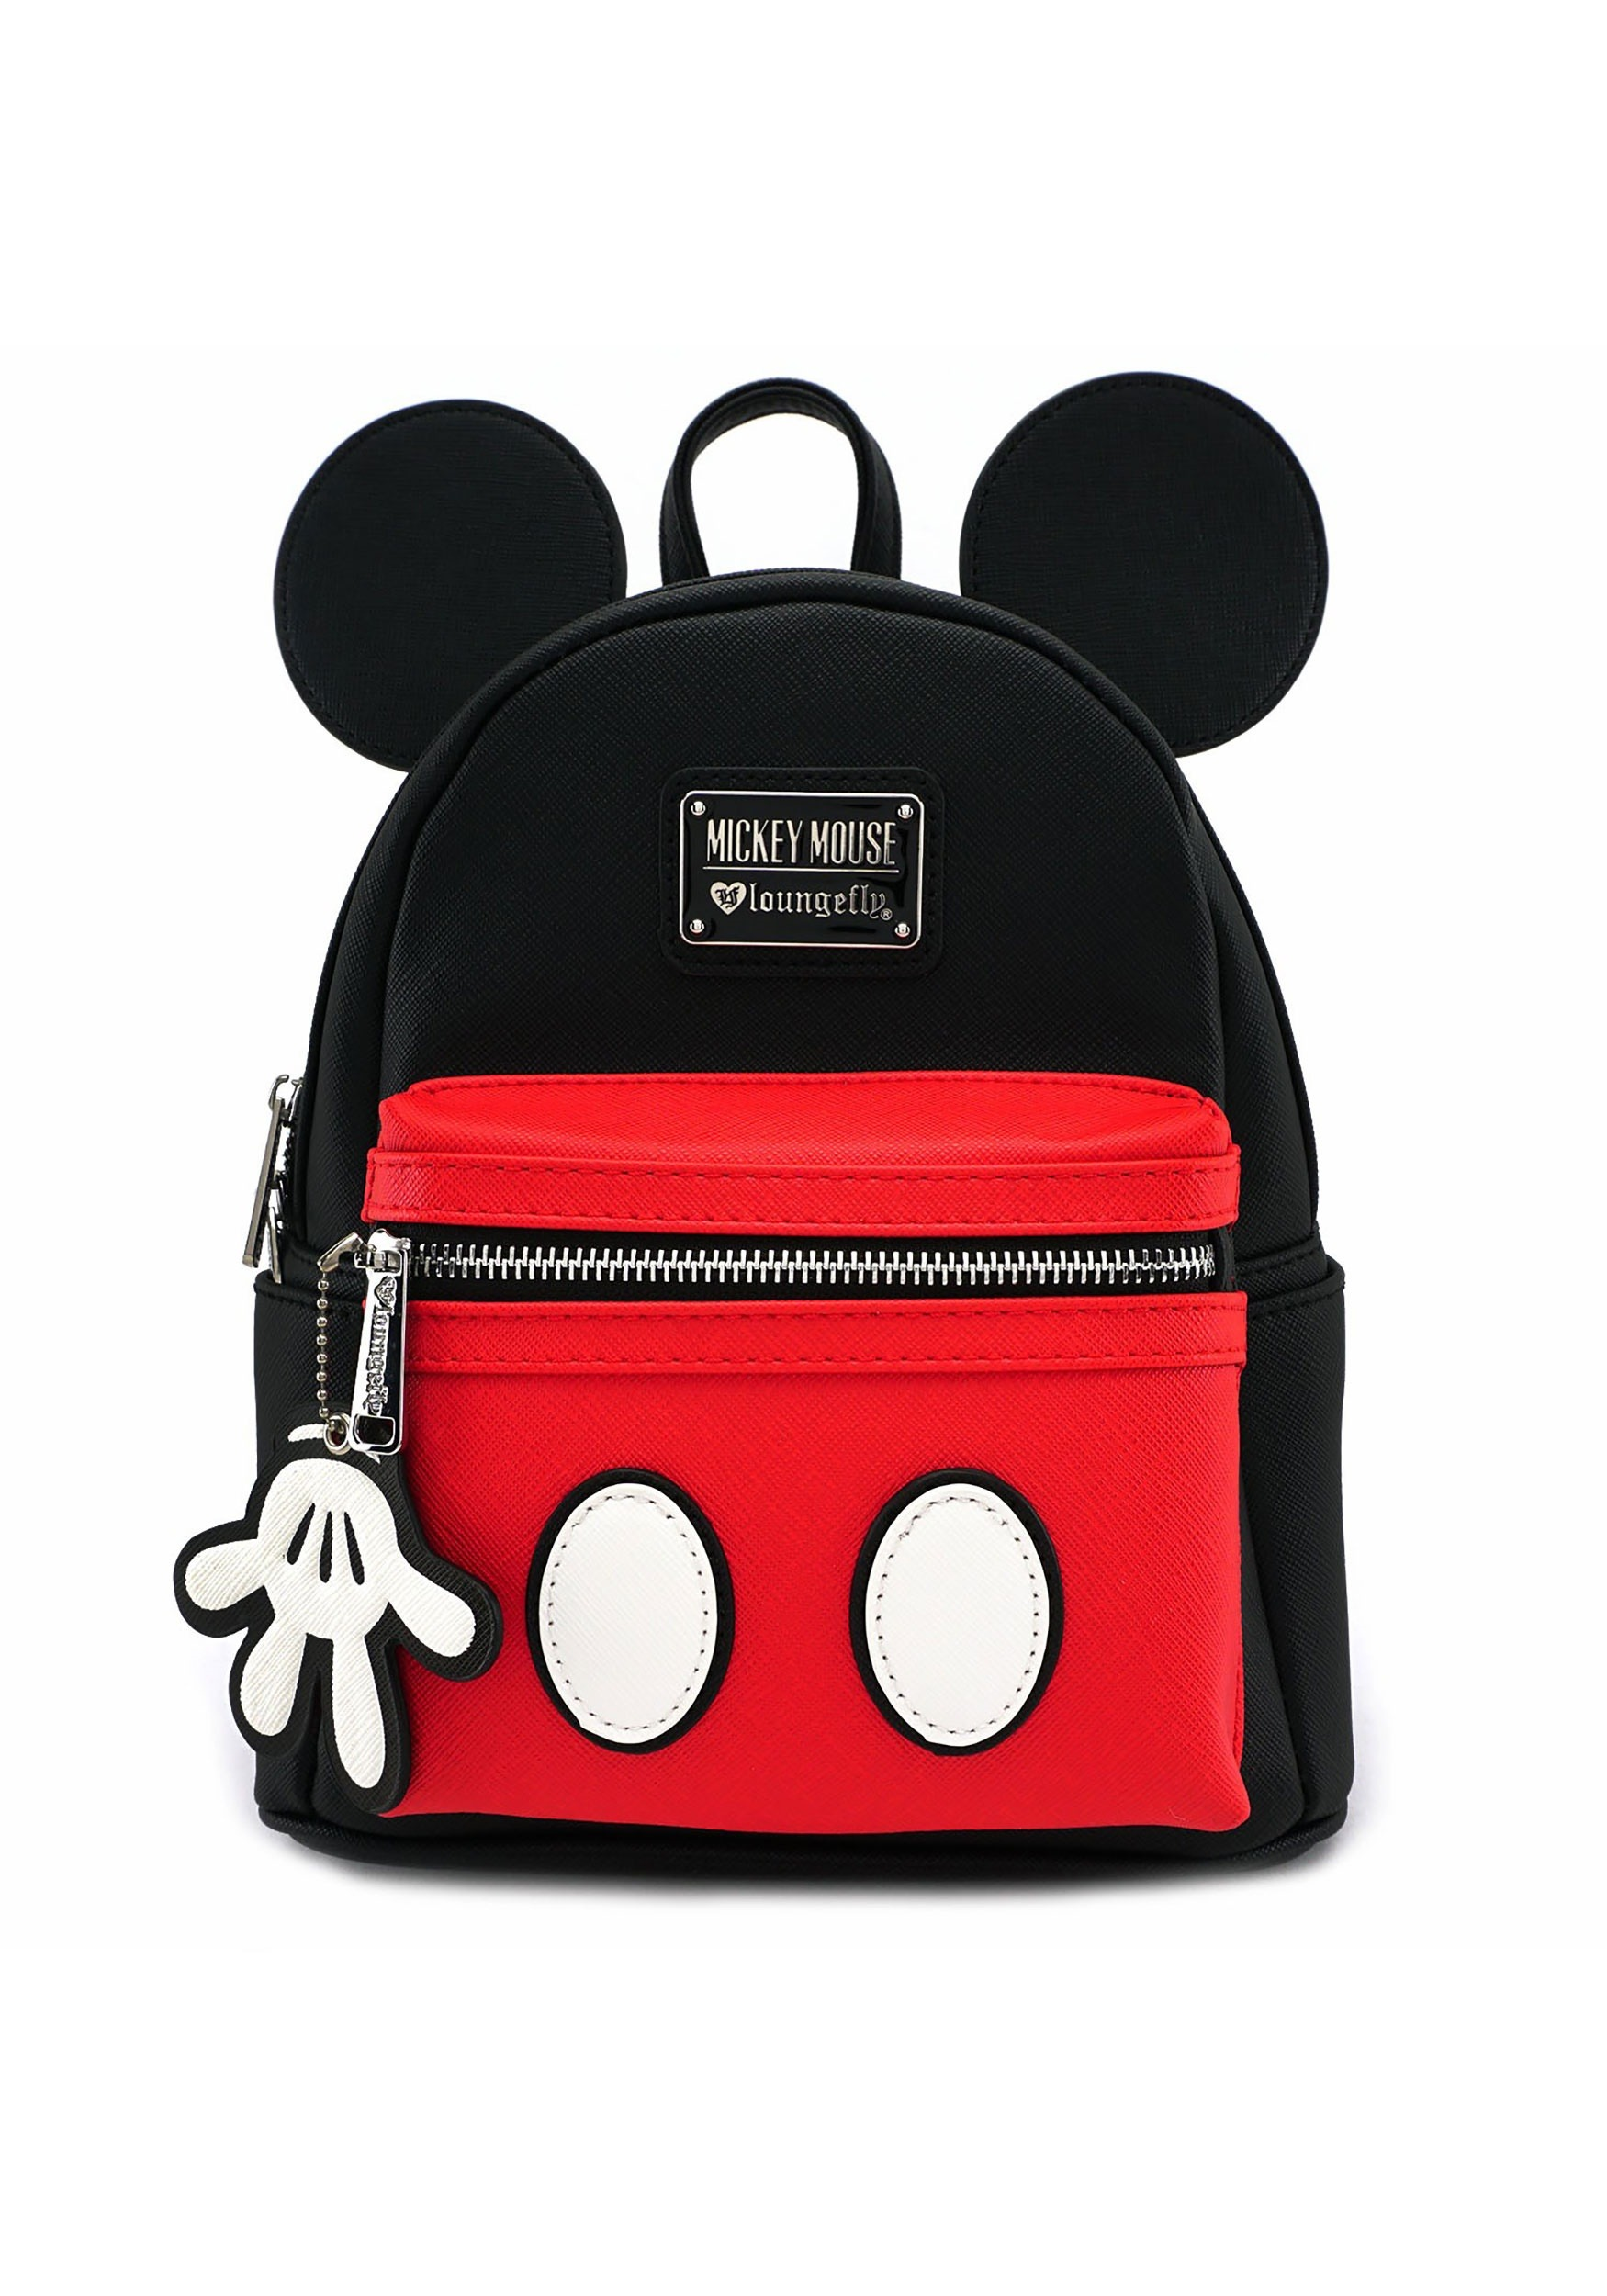 7e950b0b8e52 Loungefly Mickey Mouse Faux Leather Mini Backpack